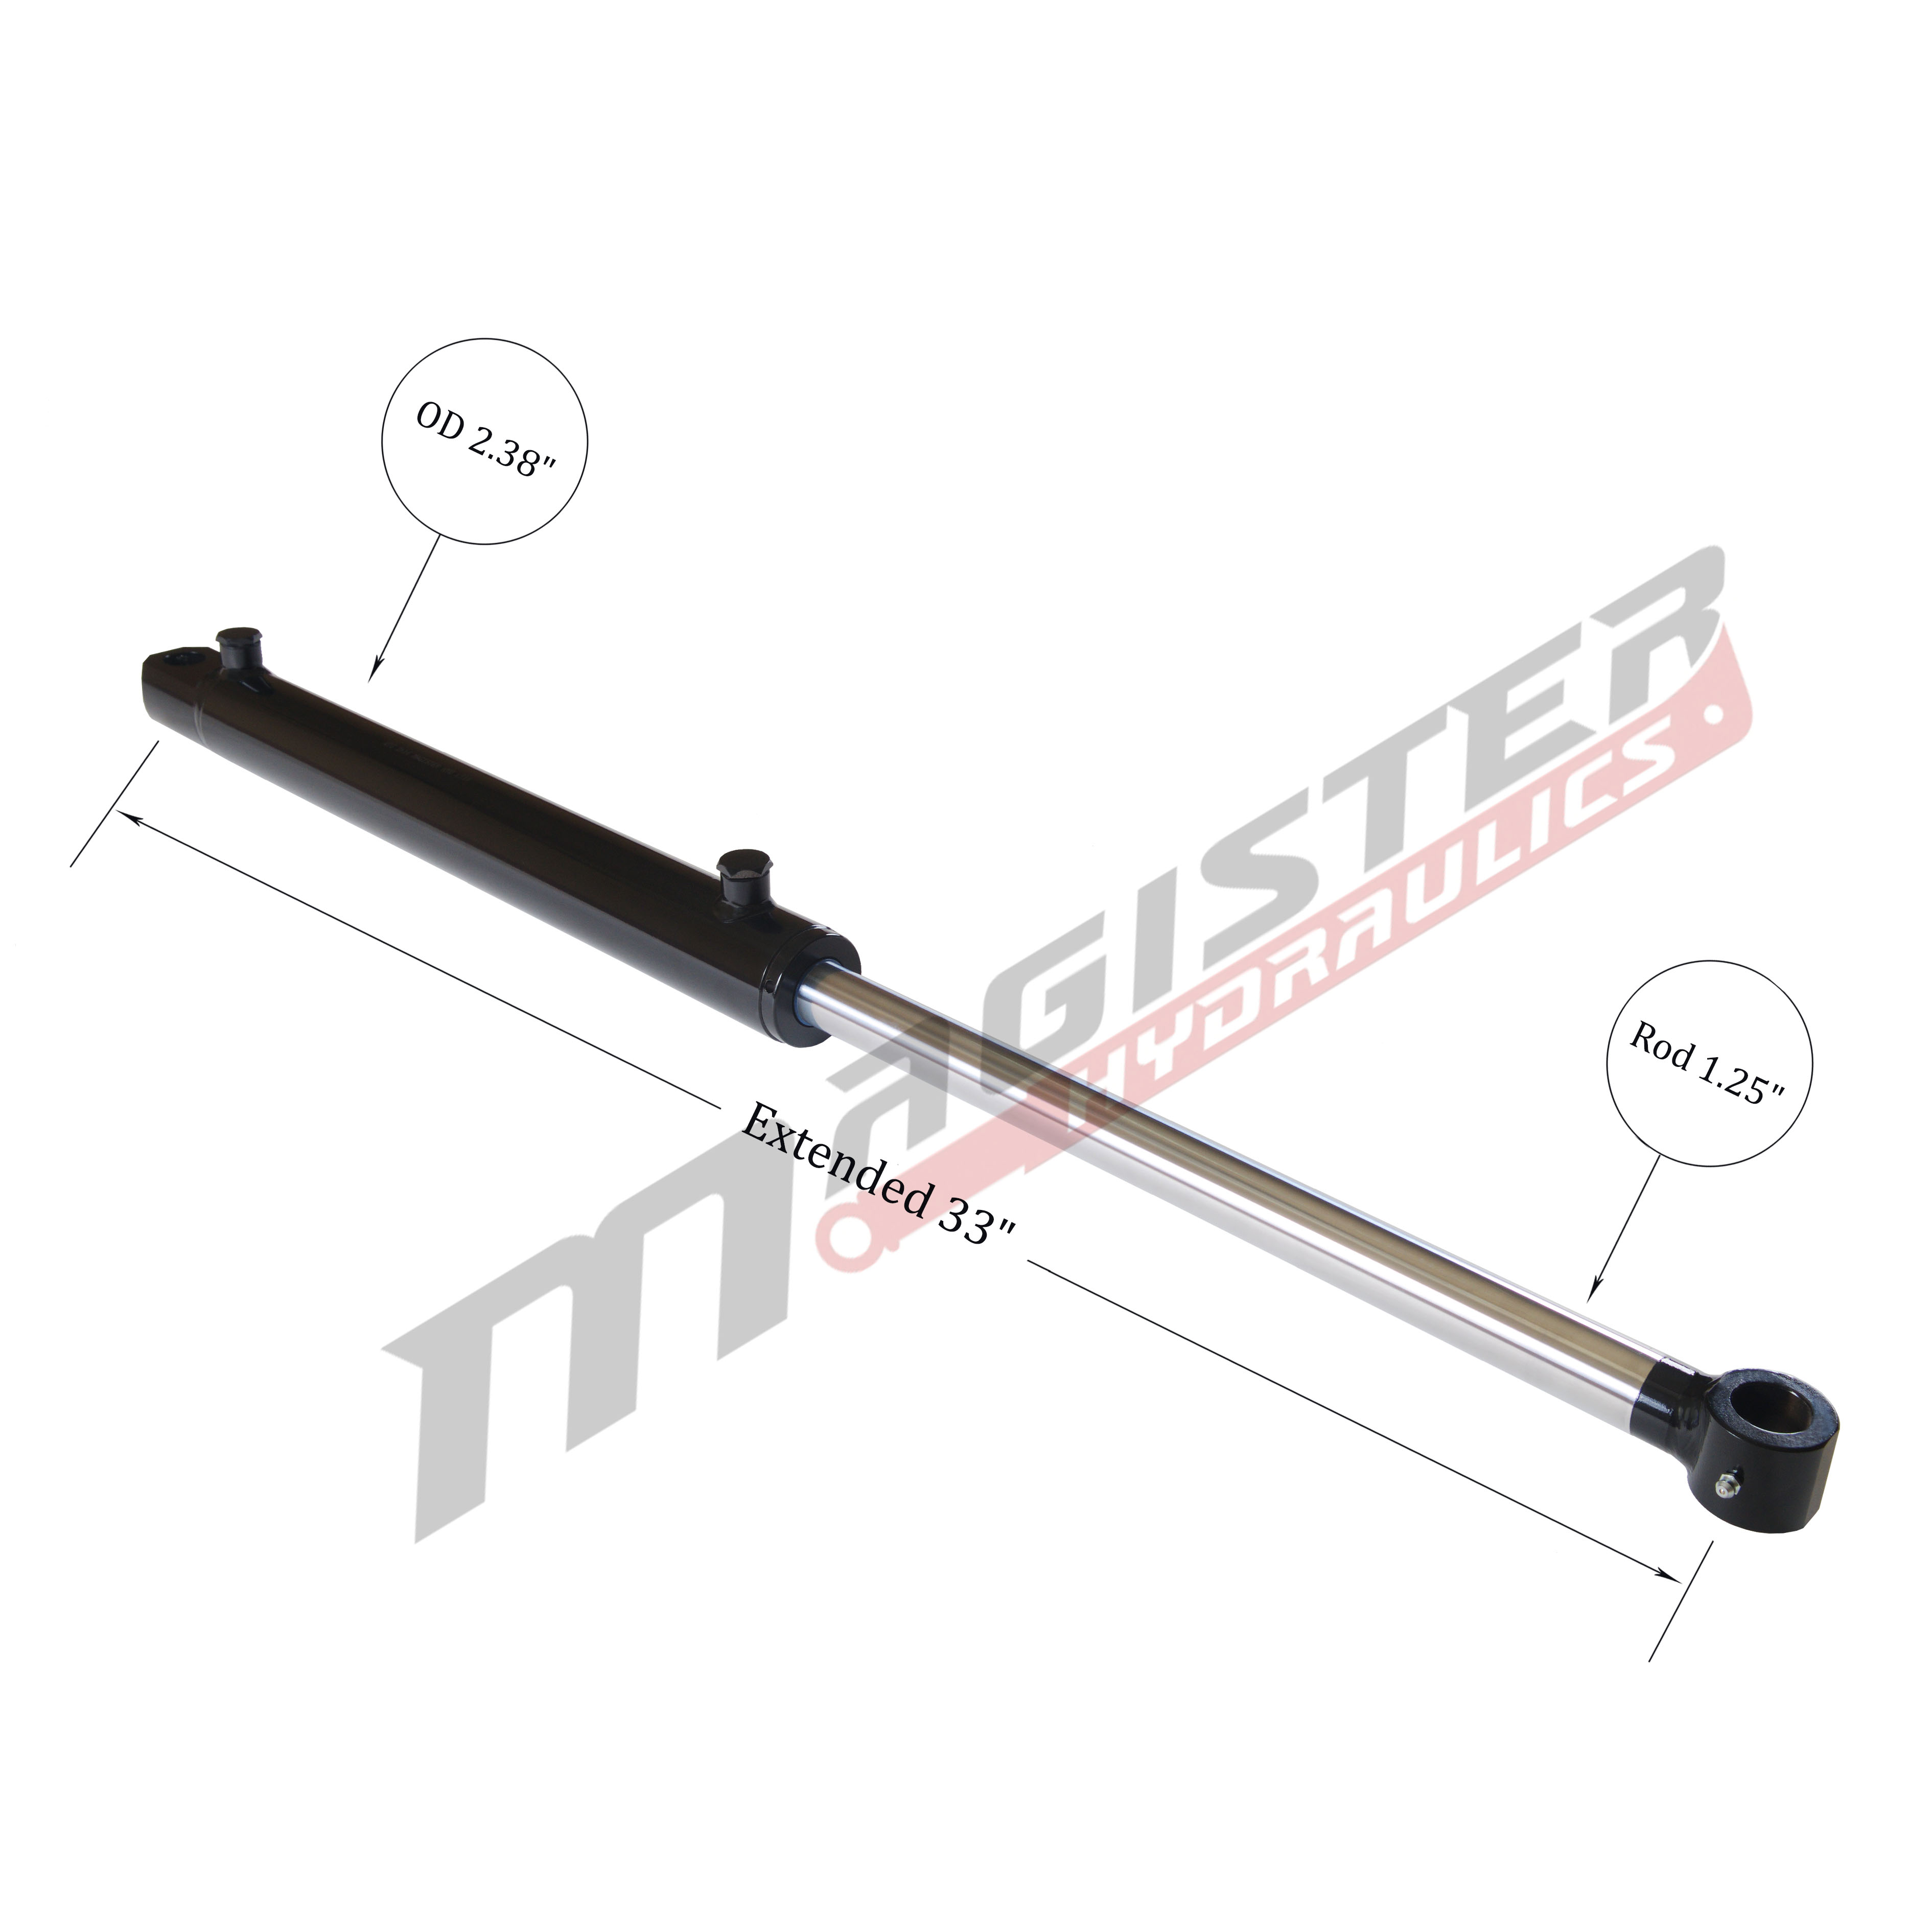 2 bore x 12 stroke hydraulic cylinder, welded tang double acting cylinder   Magister Hydraulics